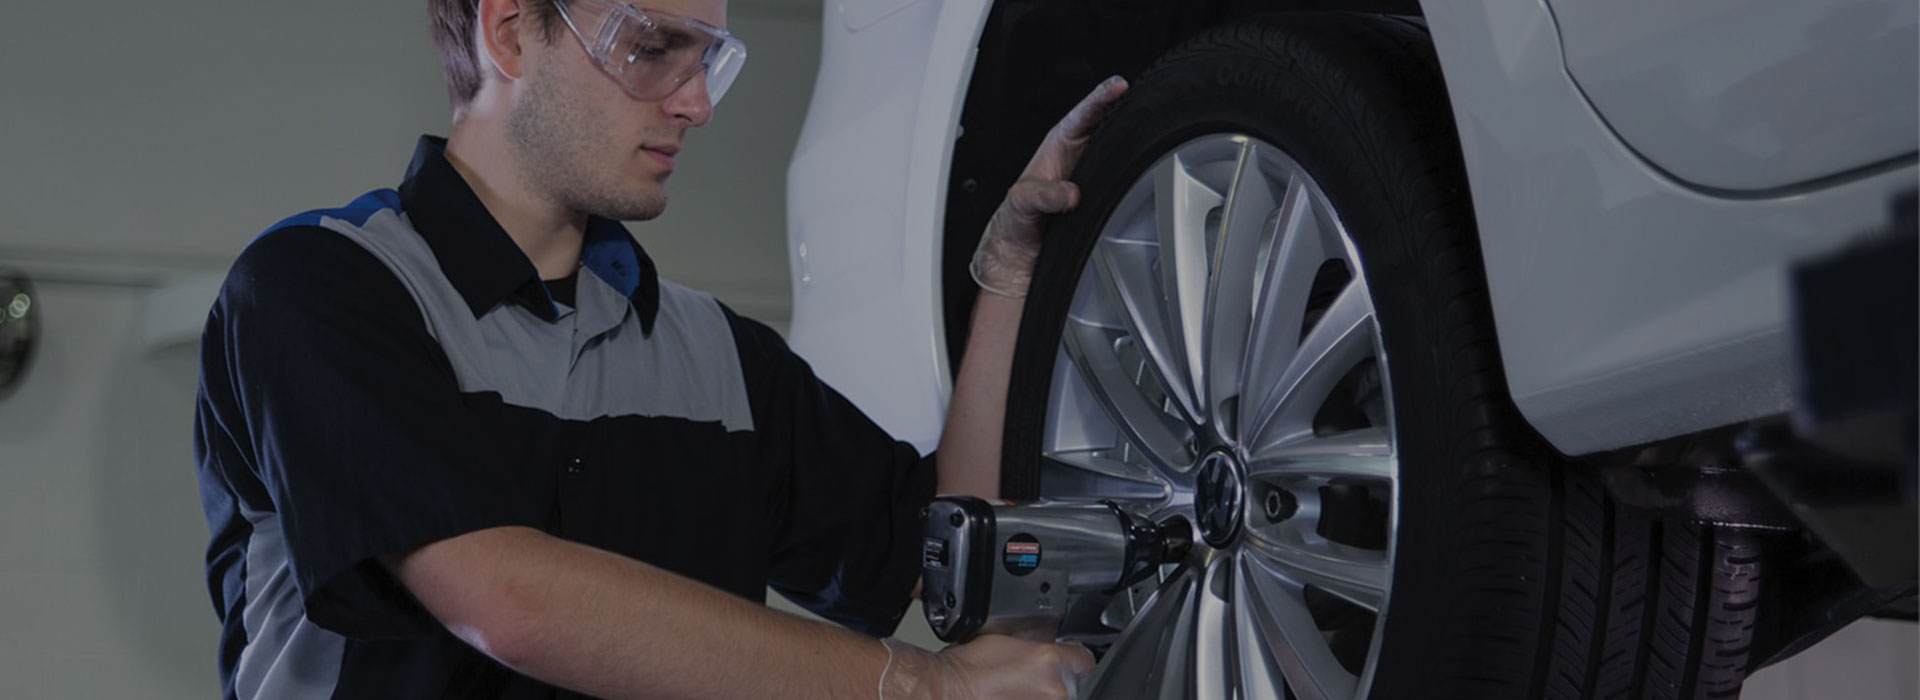 VW Tire Repair & Sales Center